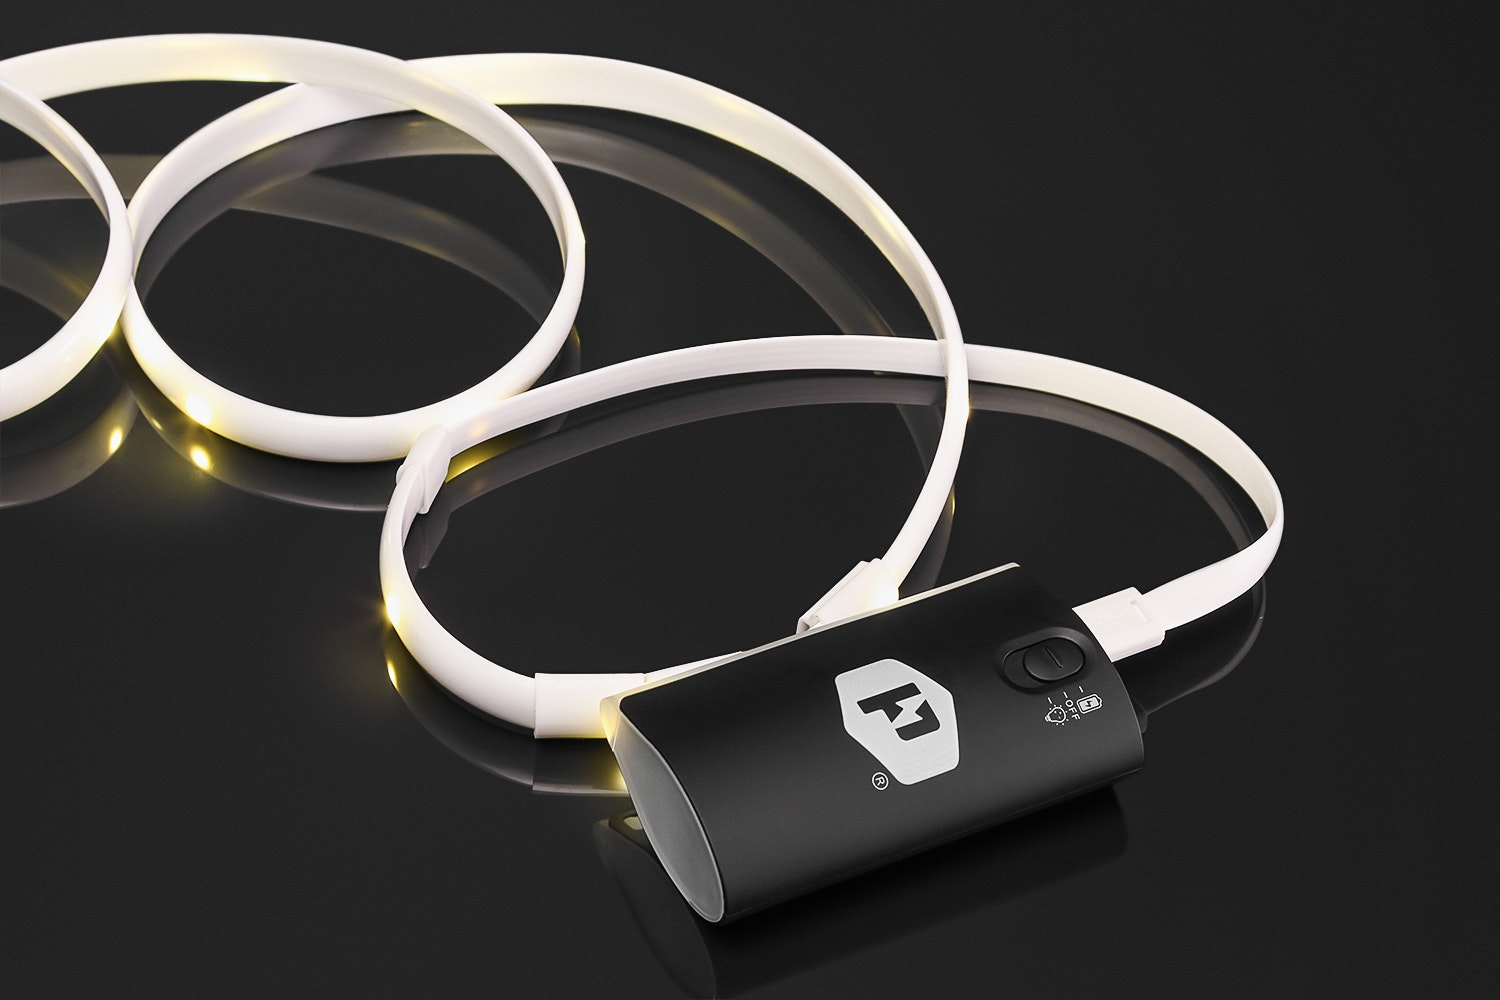 Luminoodle Light Rope and Powerbank